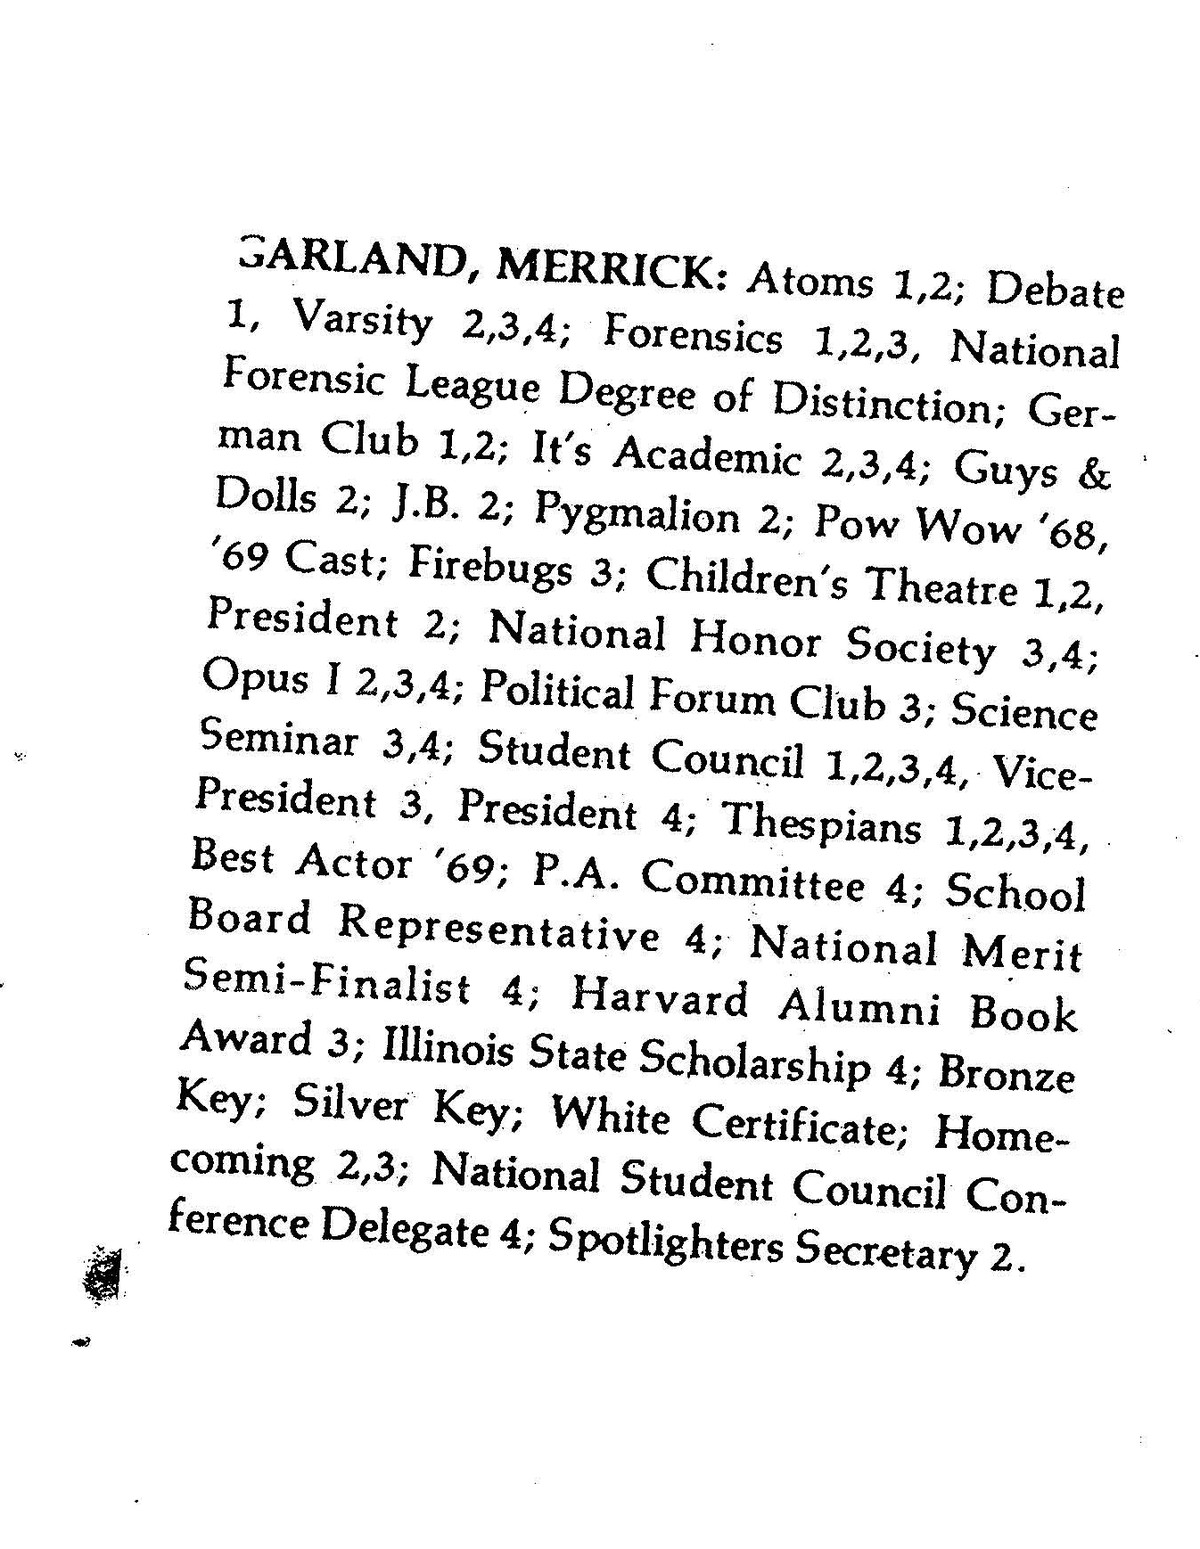 Merrick Garland was quite active at Niles West, according to his yearbook | Courtesy Niles West